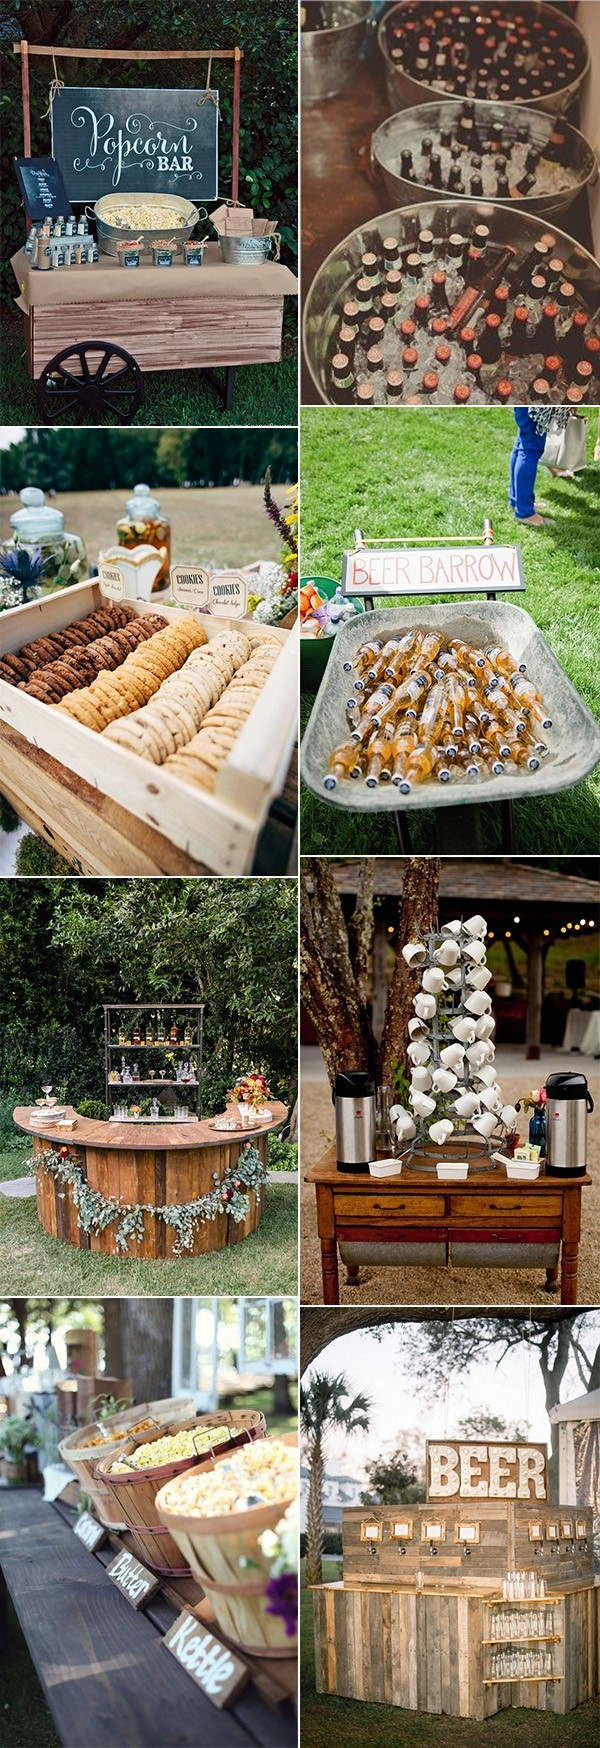 35 Brilliant Outdoor Wedding Decoration Ideas for 2018 Trends ...